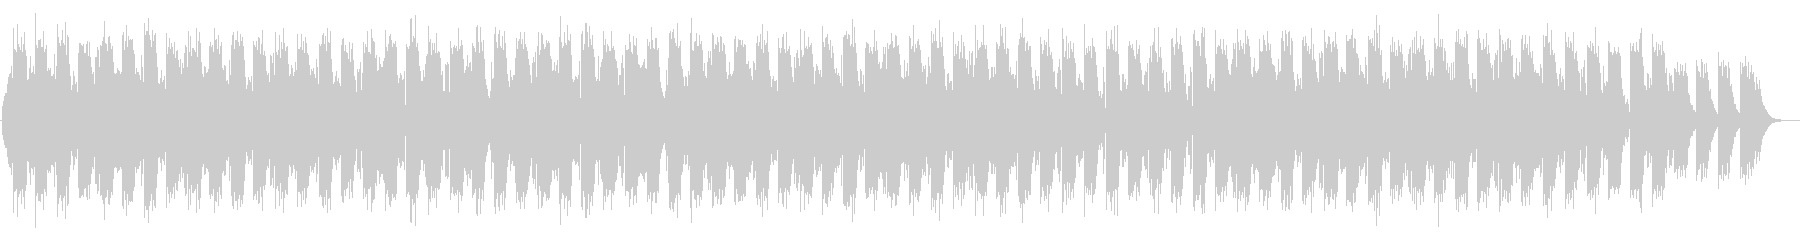 Loose erhu BGM's unreproduced waveform